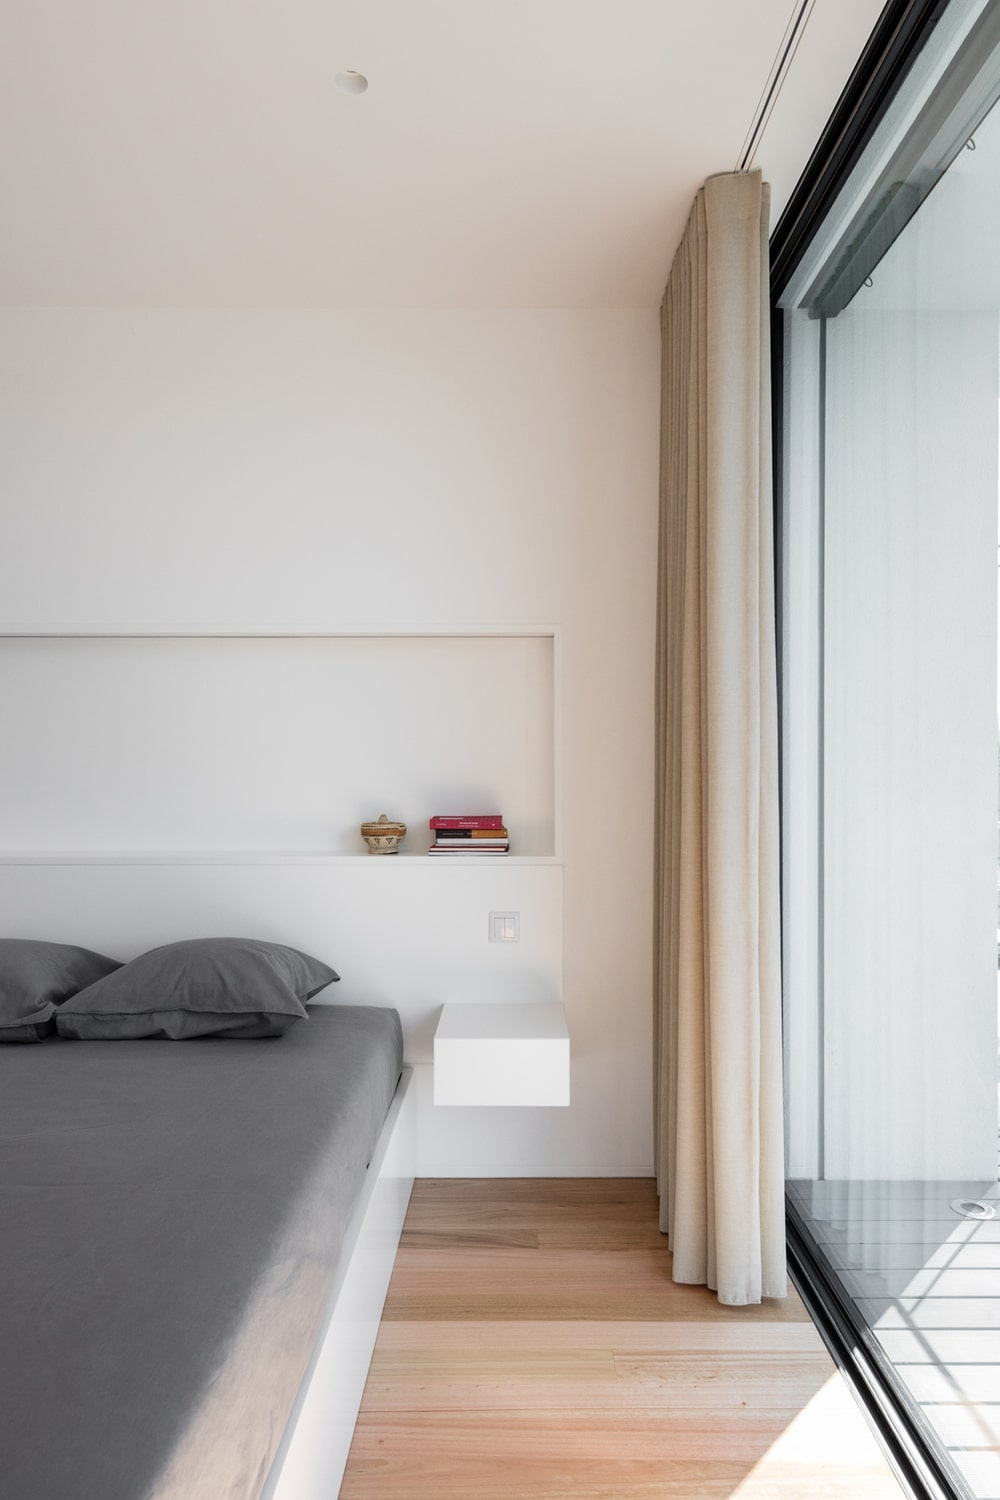 This is a close look at the bedroom that has a built-in platform bed and bedside table along with a large alcove shelf above it.